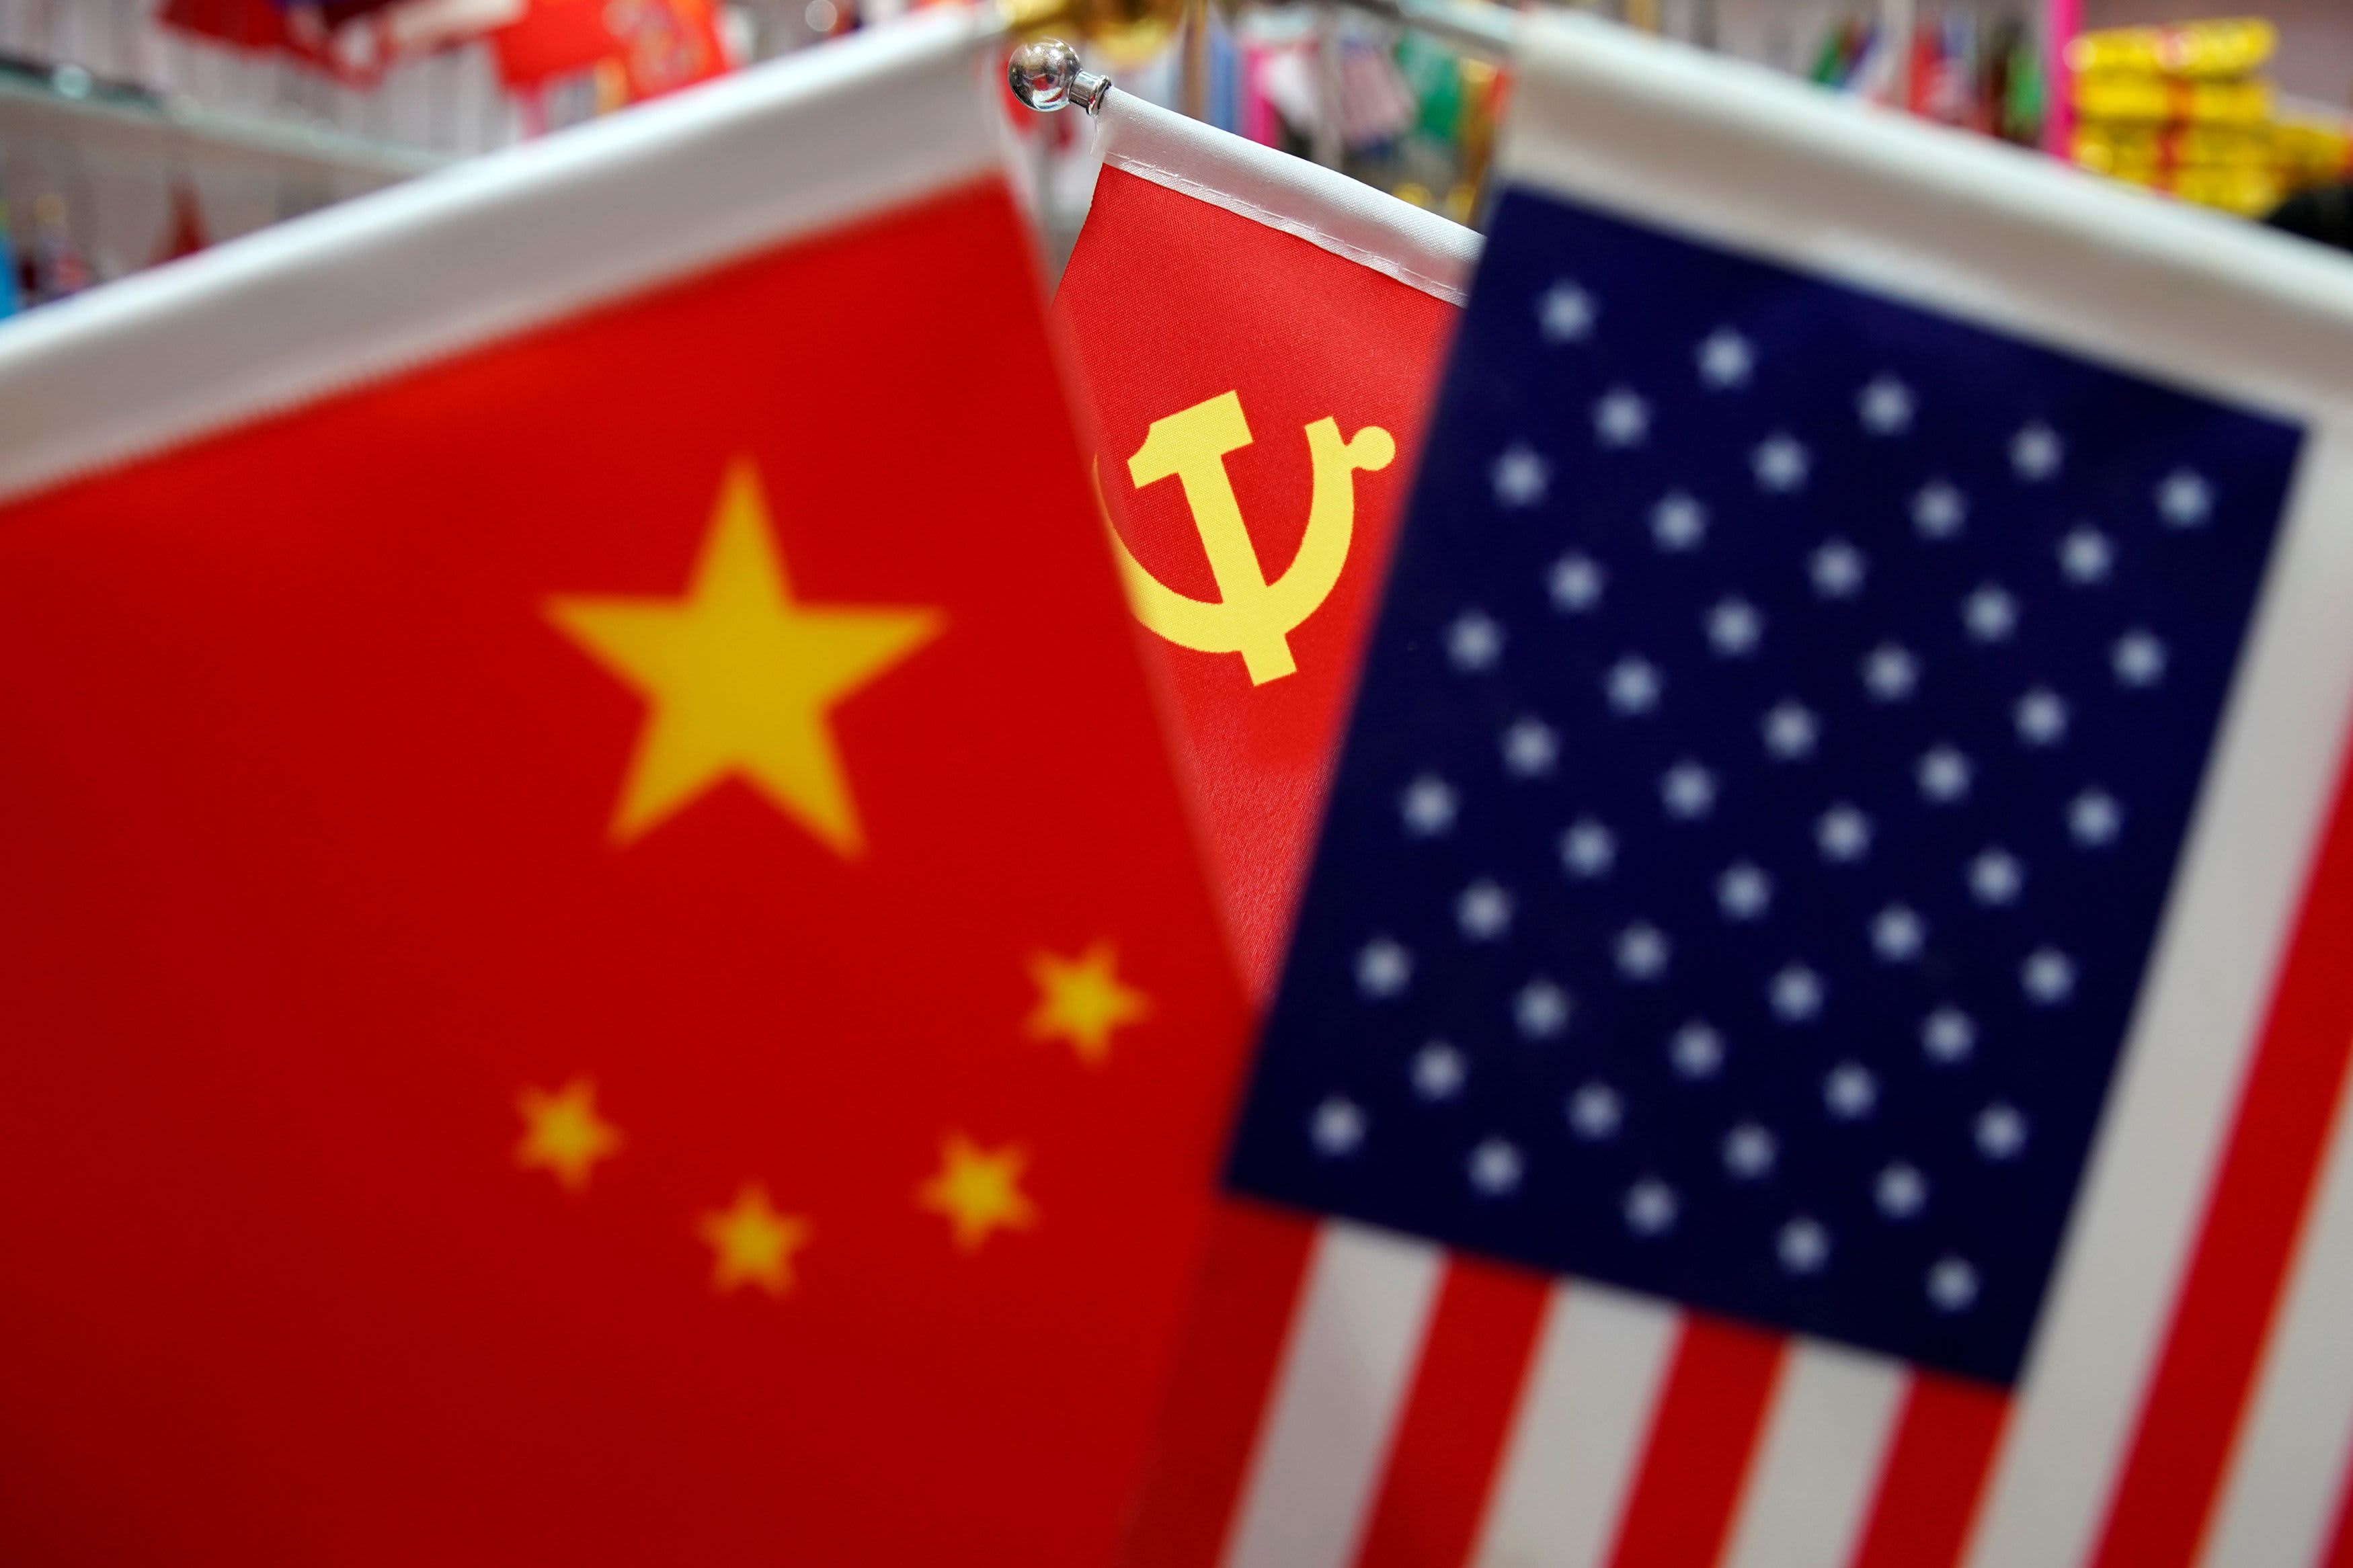 Chinese Foreign Minister Takes Firm Tone, Calls for 'Non-Interference' Between China and the U.S. – NBC 7 San Diego